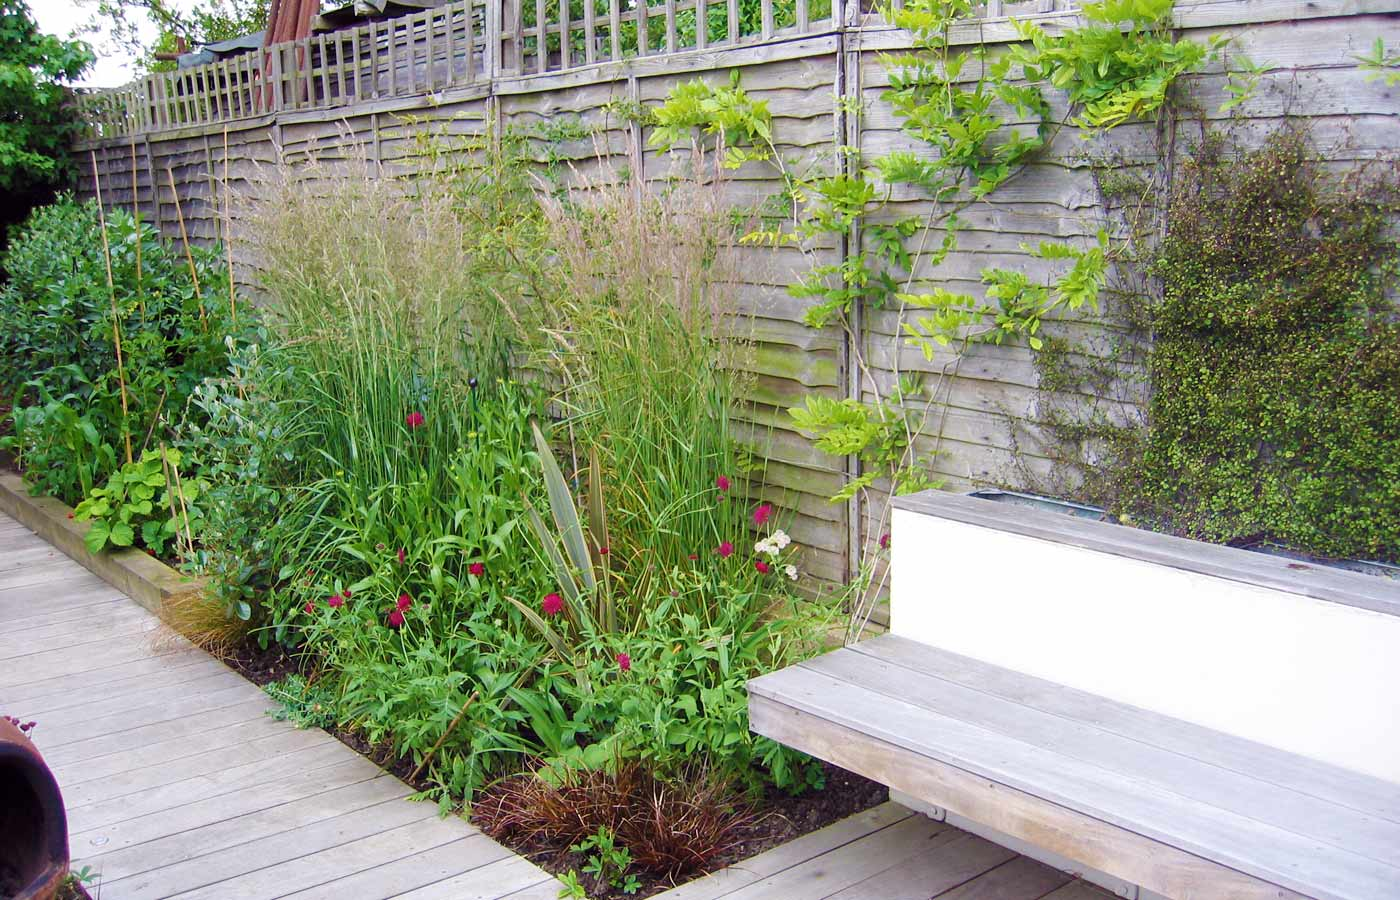 Garden Planting Ideas Raised Beds